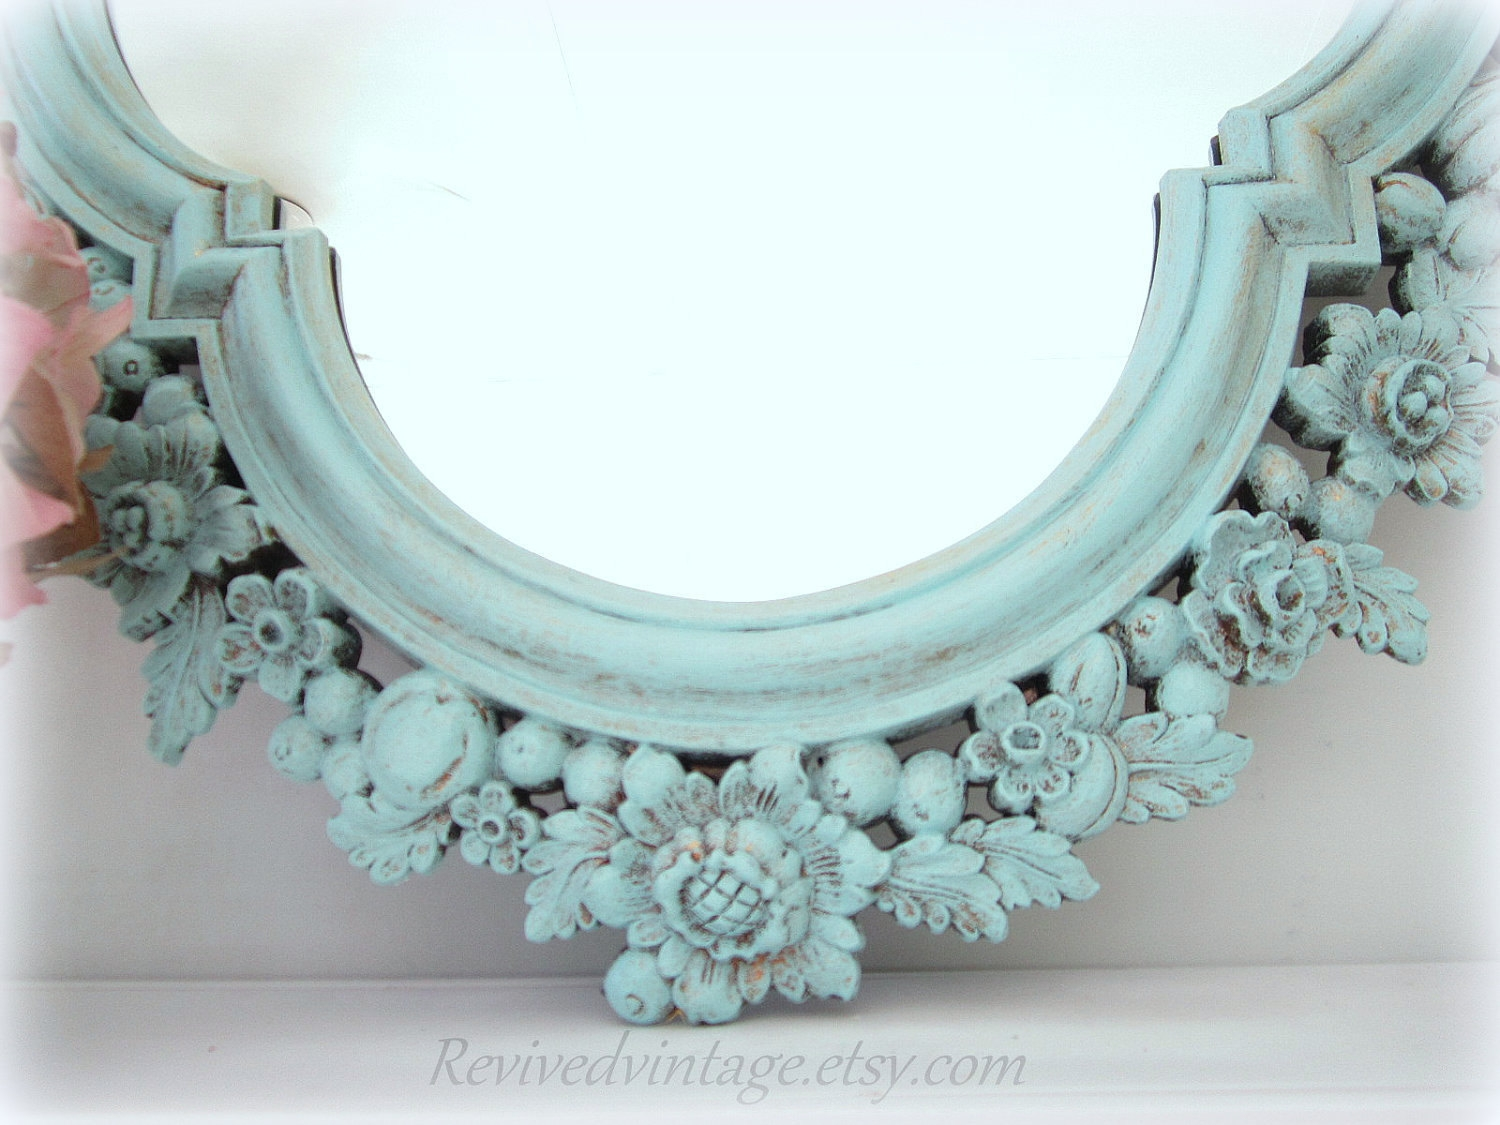 Decorative Vintage Mirrors For Sale Large Mirror Shab Chic Inside Vintage Mirrors For Sale (View 8 of 15)